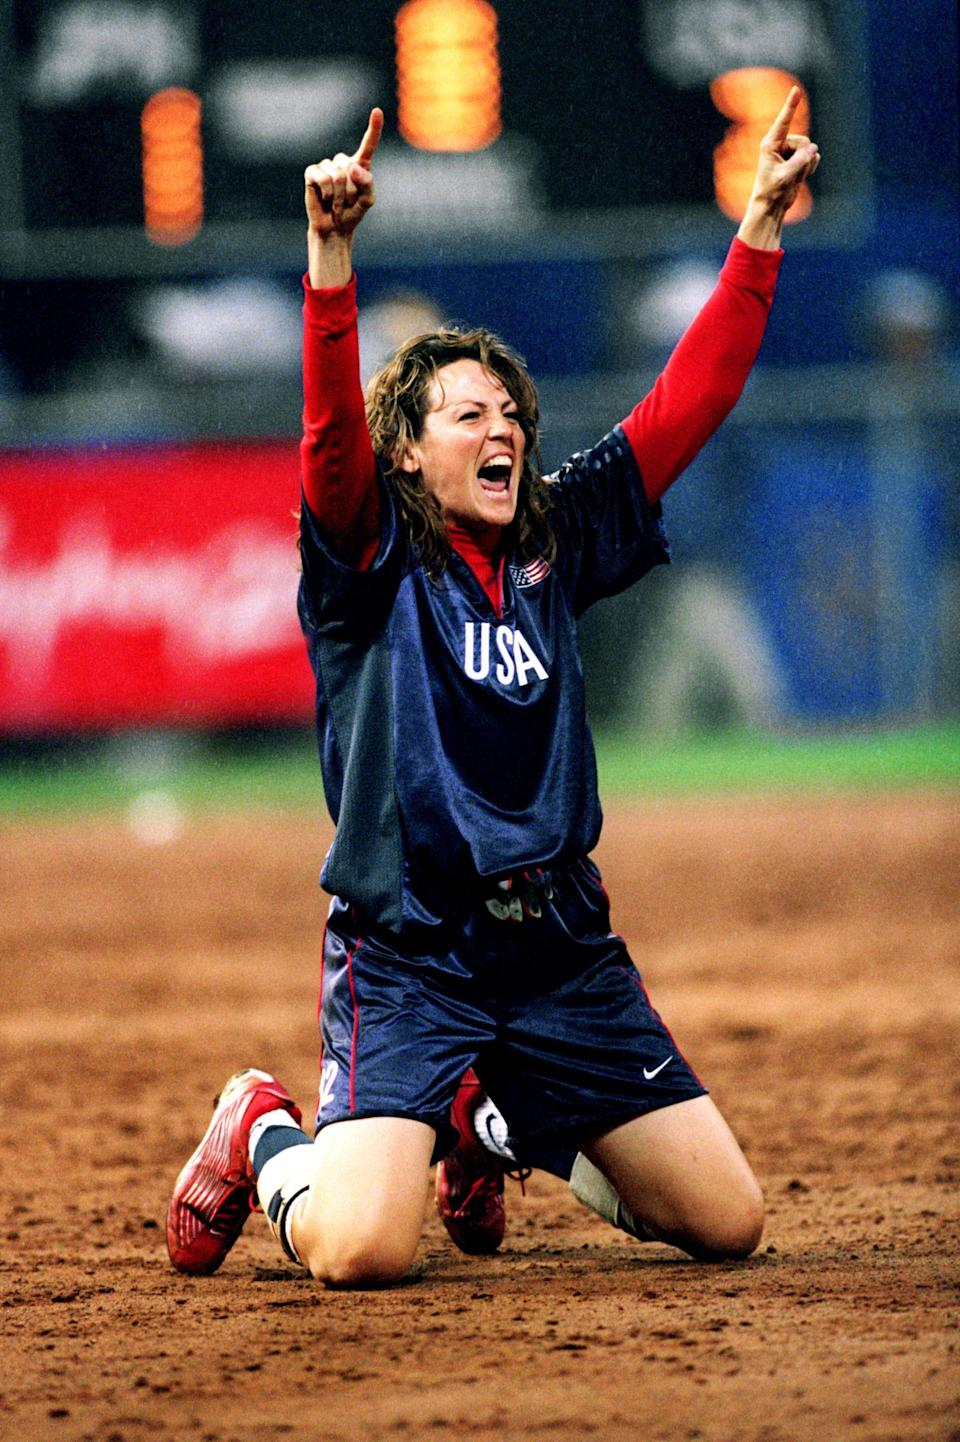 <p>The US had never lost to Japan in the Olympics until 2000, when they fell 2-1 in a game that went deep into extra innings. The US entered the competition as the gold medal favorite, but that loss sent the team into its first three-game losing streak in international competition. The US had to fight its way back to the top, ultimately securing the gold medal in another close-fought, 2-1 game against - you guessed it - Japan.</p>